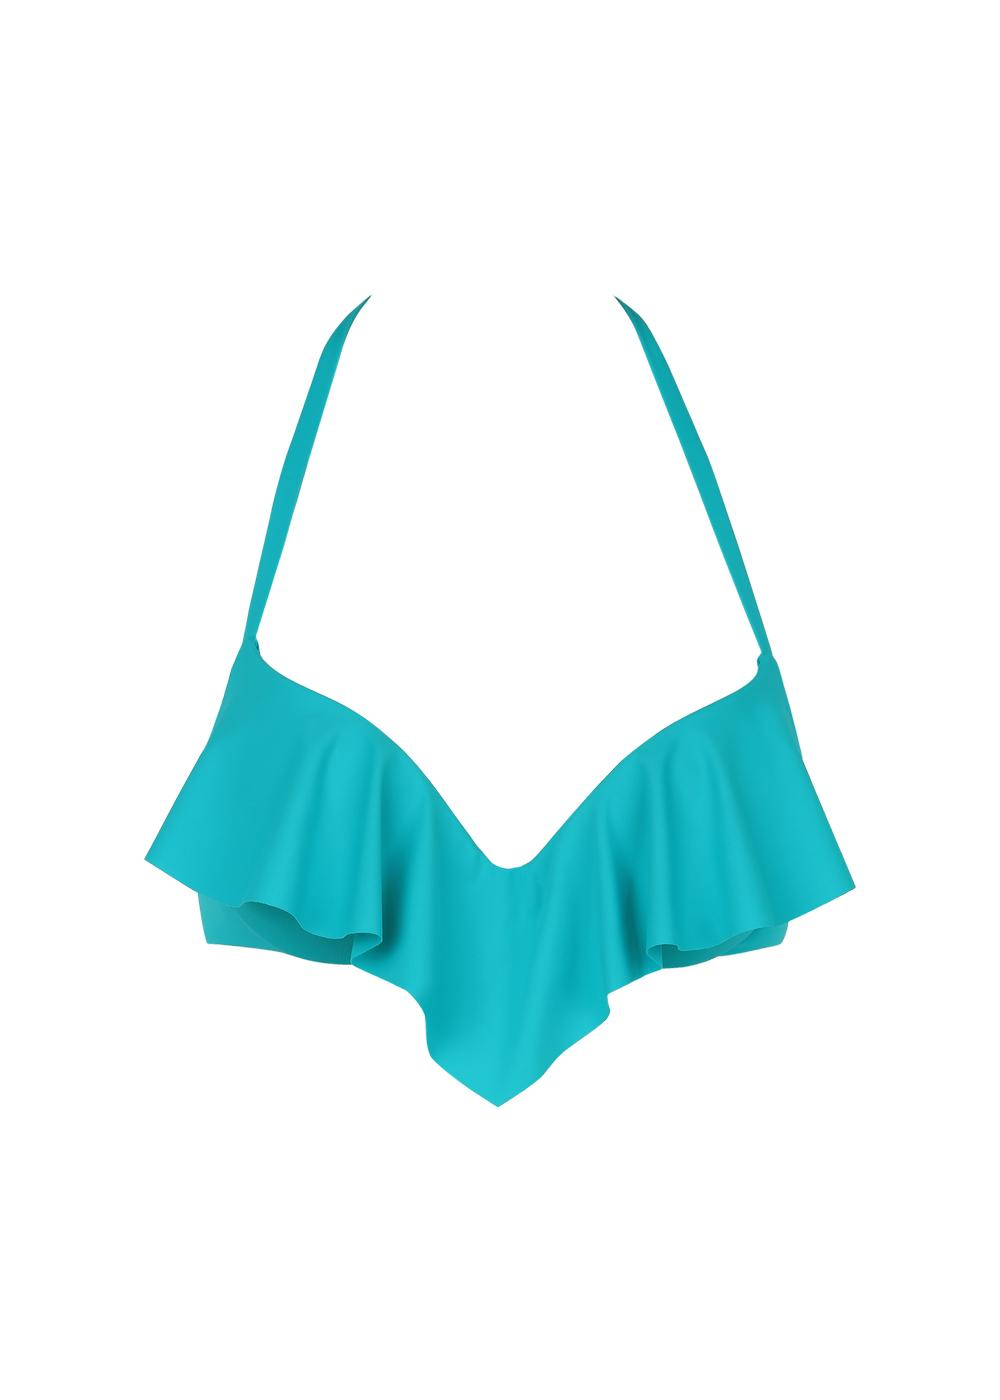 Indonesia Szuper Push Up Bikini Fodorral